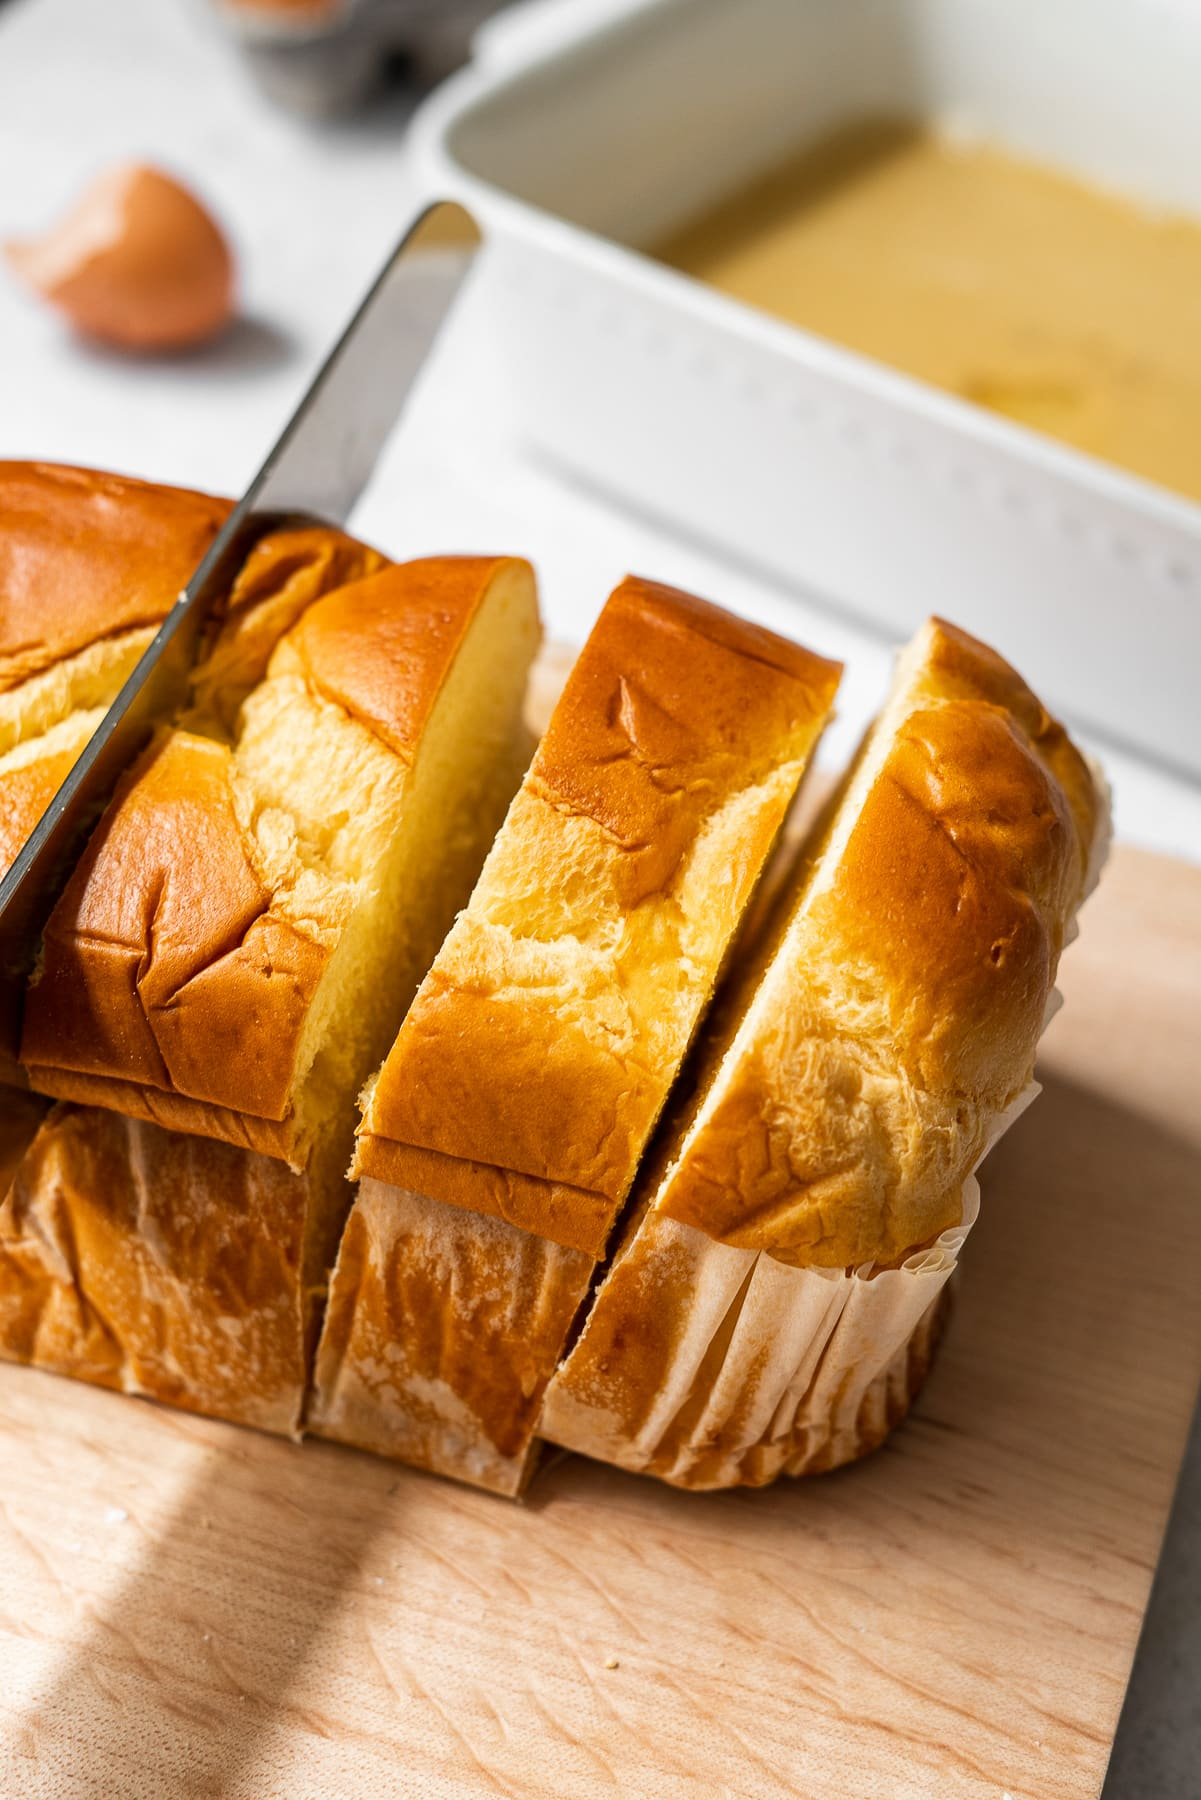 cutting thick cut slices from a brioche bread loaf